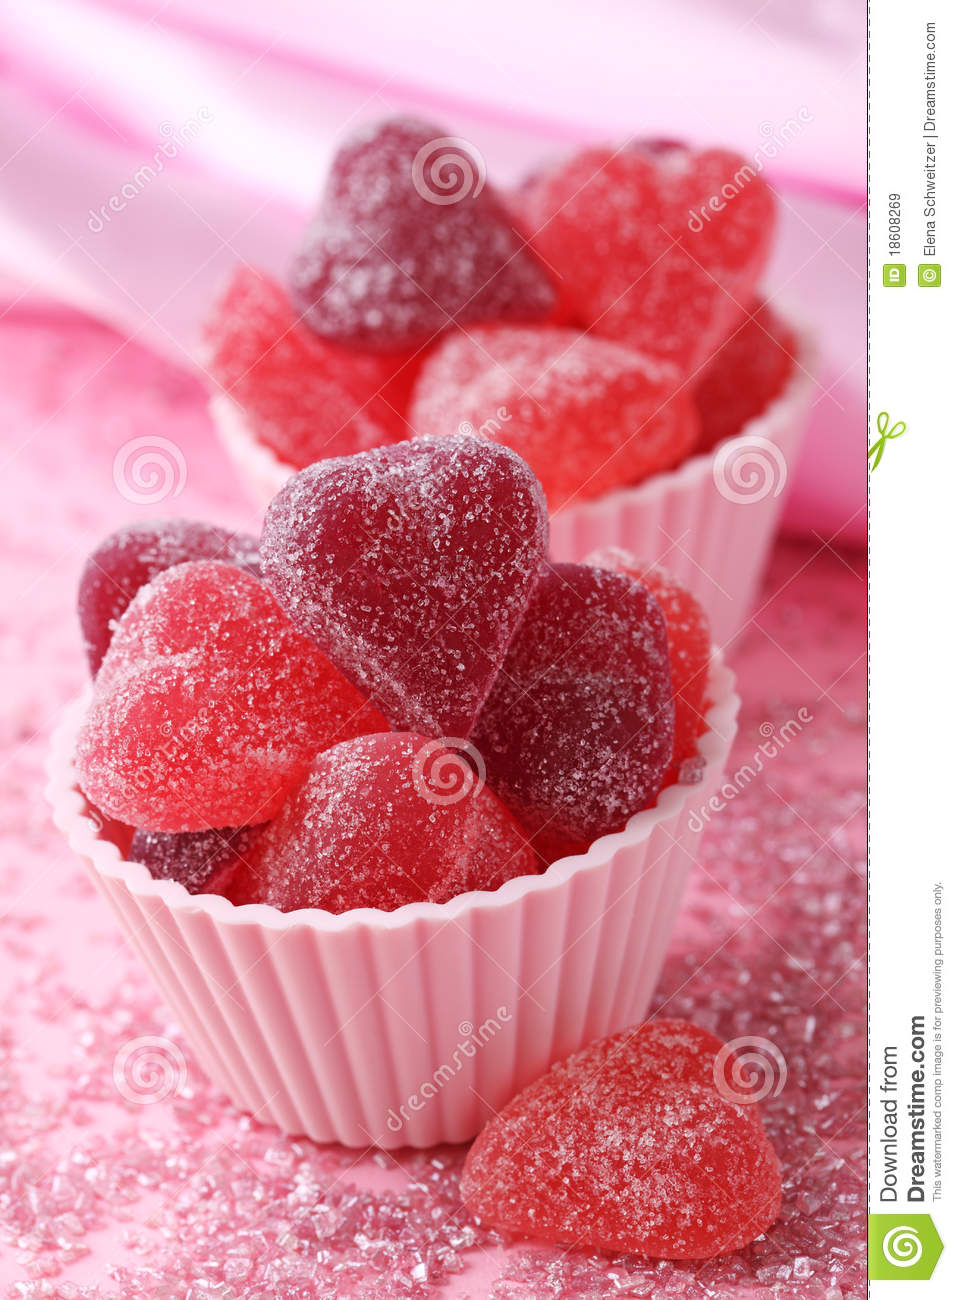 Fruit Jellies Candy Royalty Free Stock Images - Image: 18608269